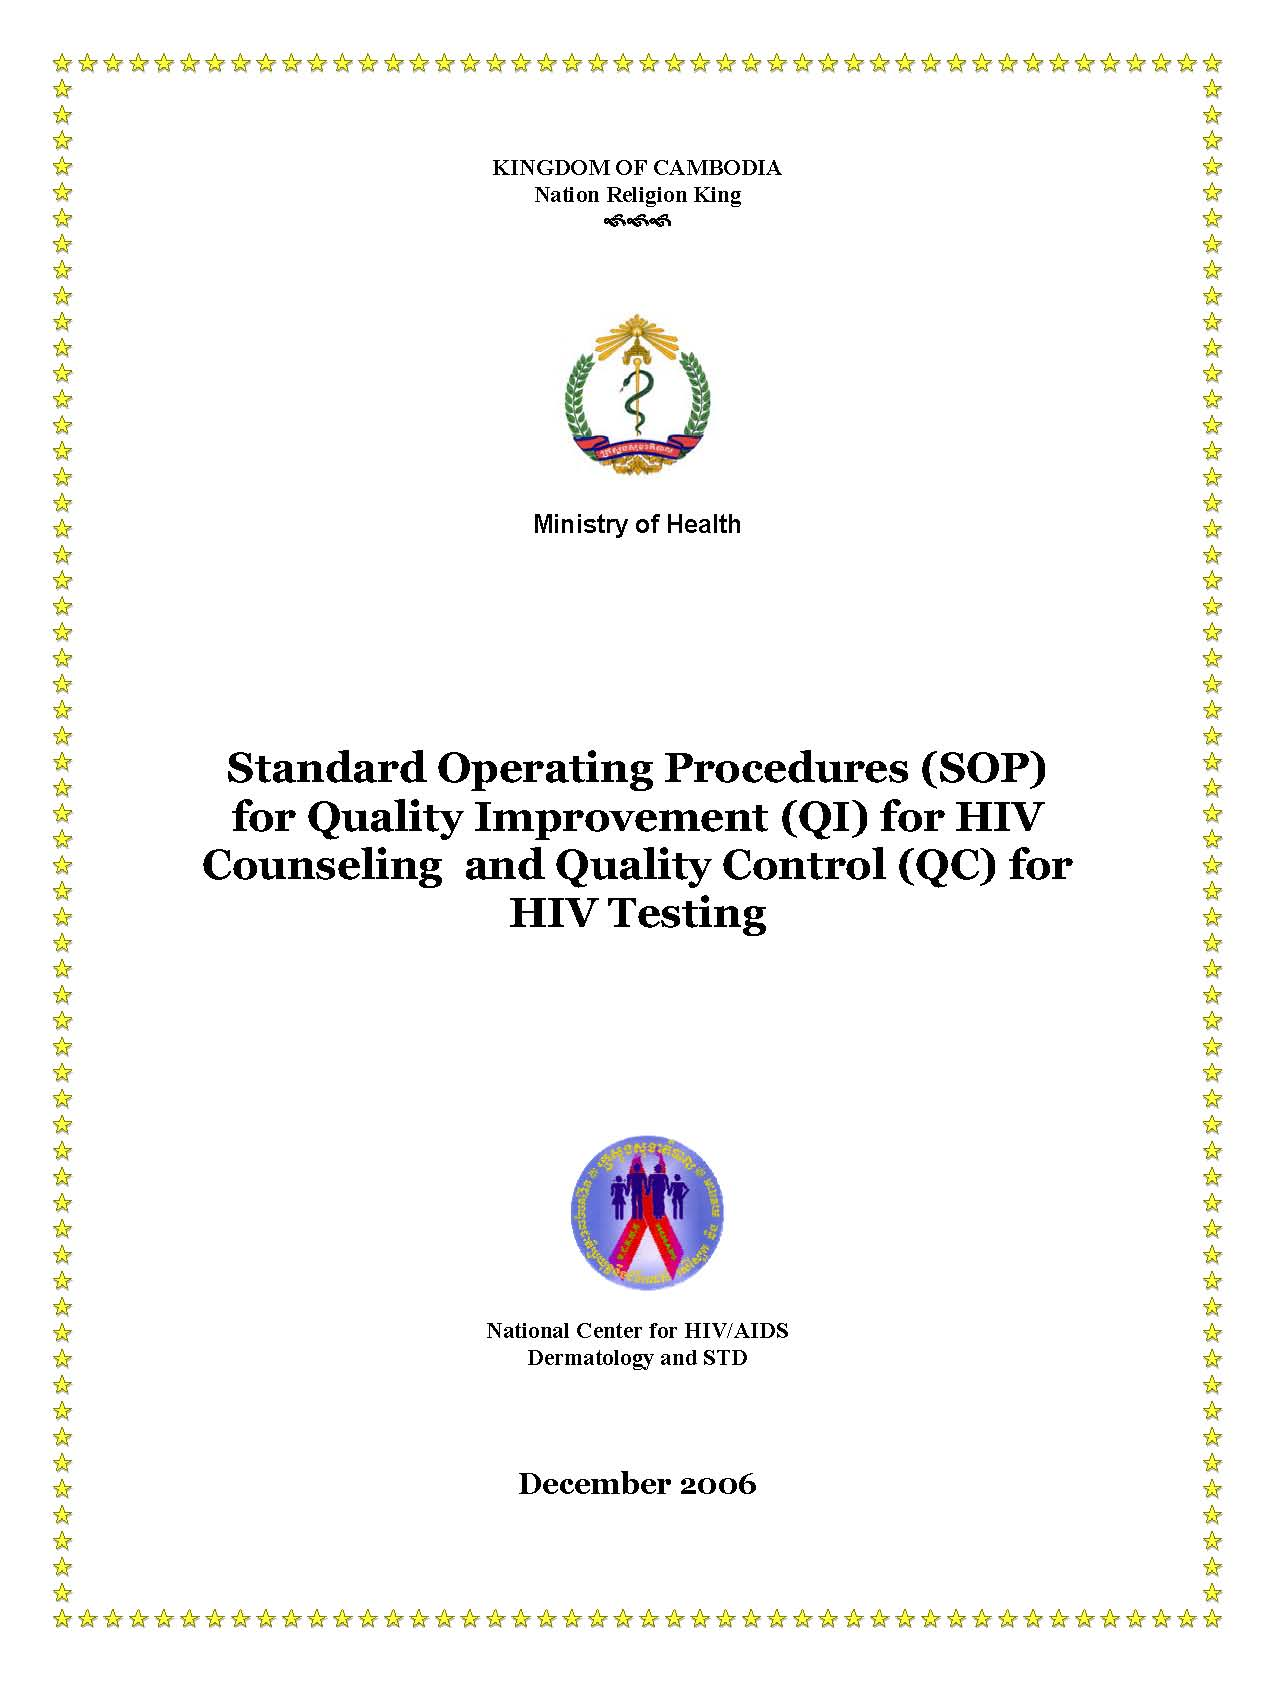 SOP for Quality Improvement for HIV Counseling and Quality Control for HIV Testing